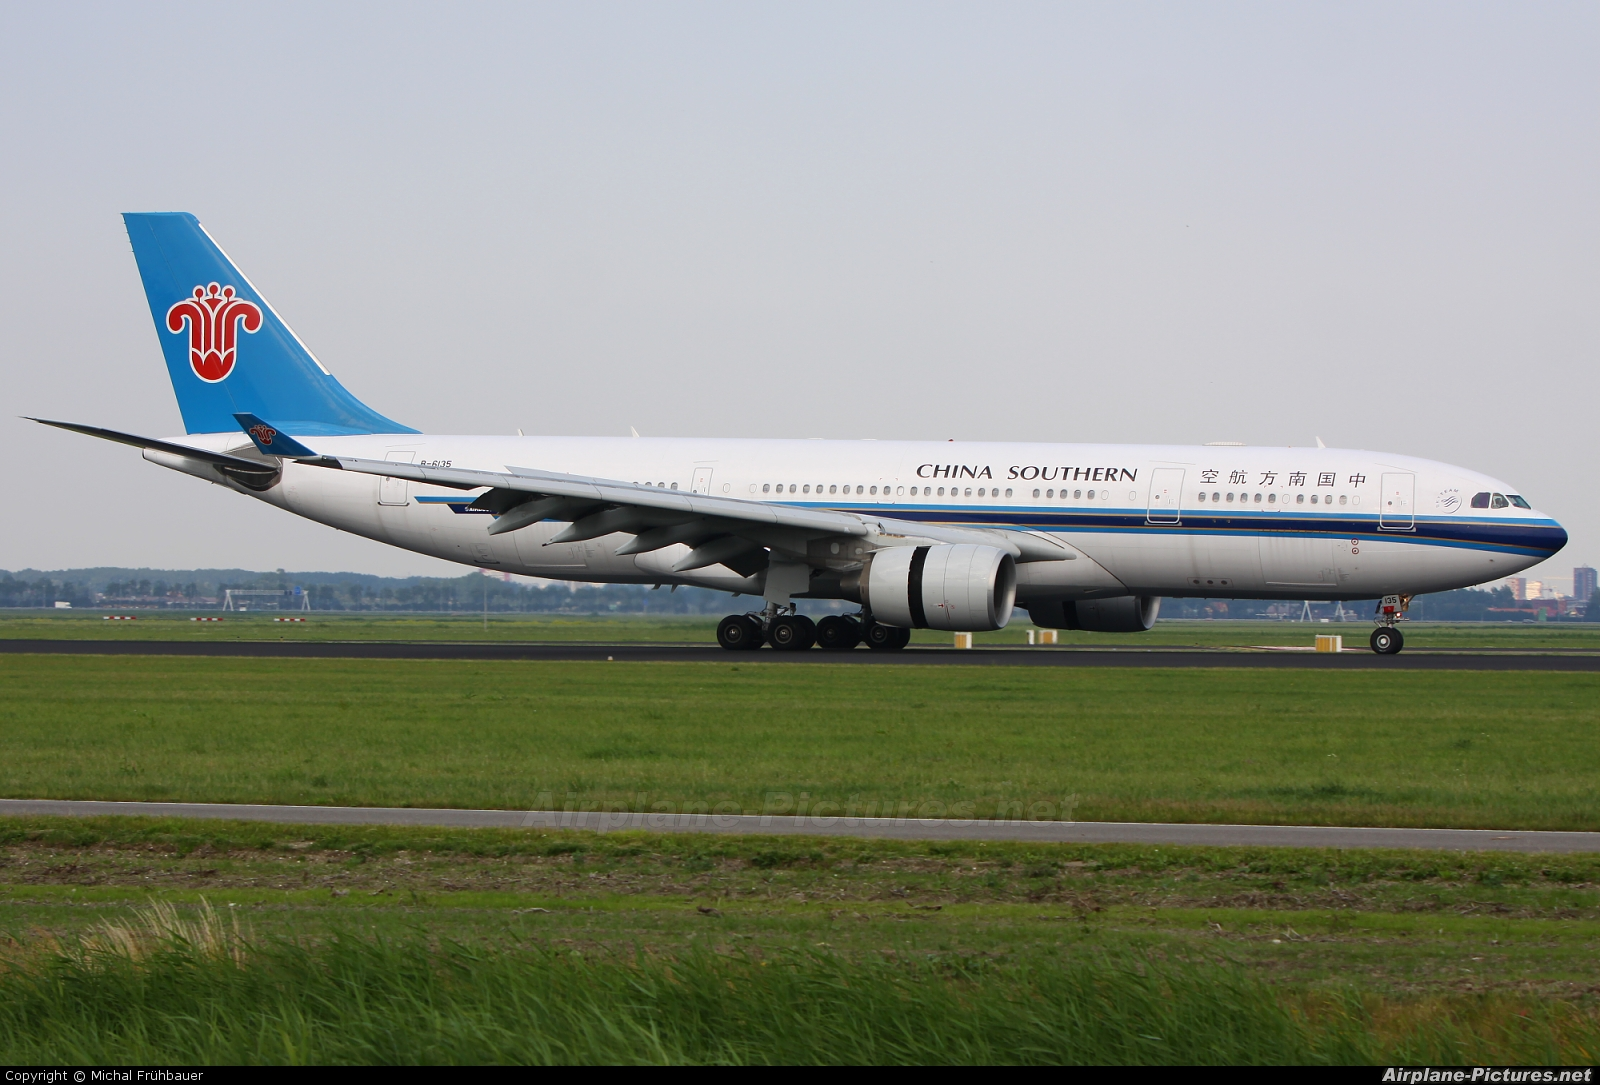 China Southern Airlines B-6135 aircraft at Amsterdam - Schiphol